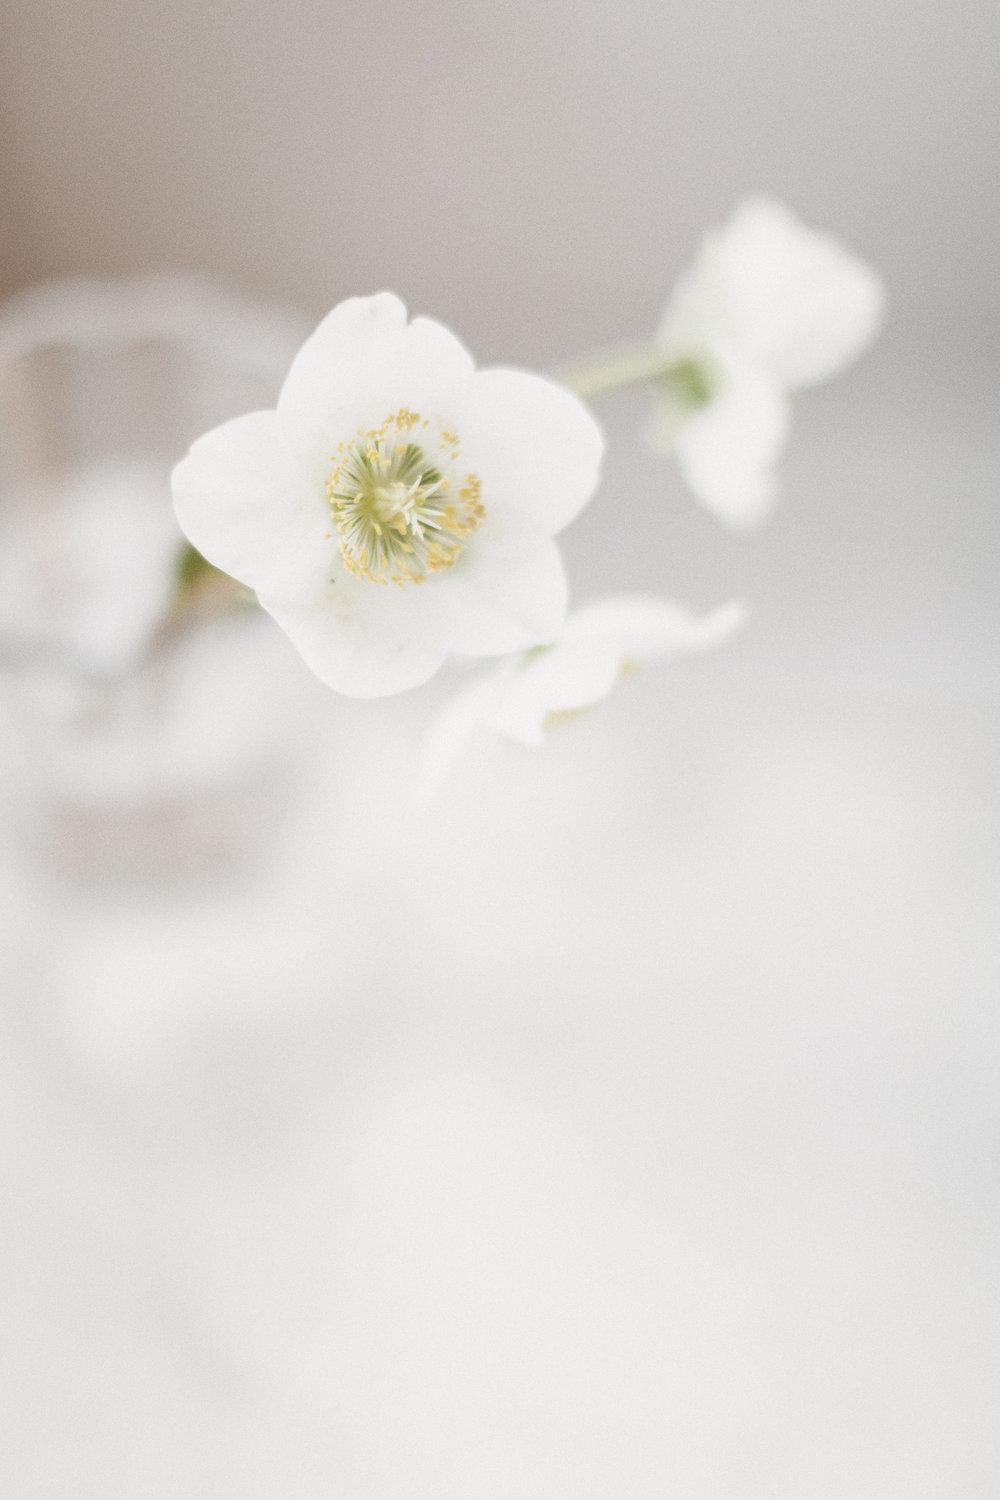 March Favourites - Hellebore